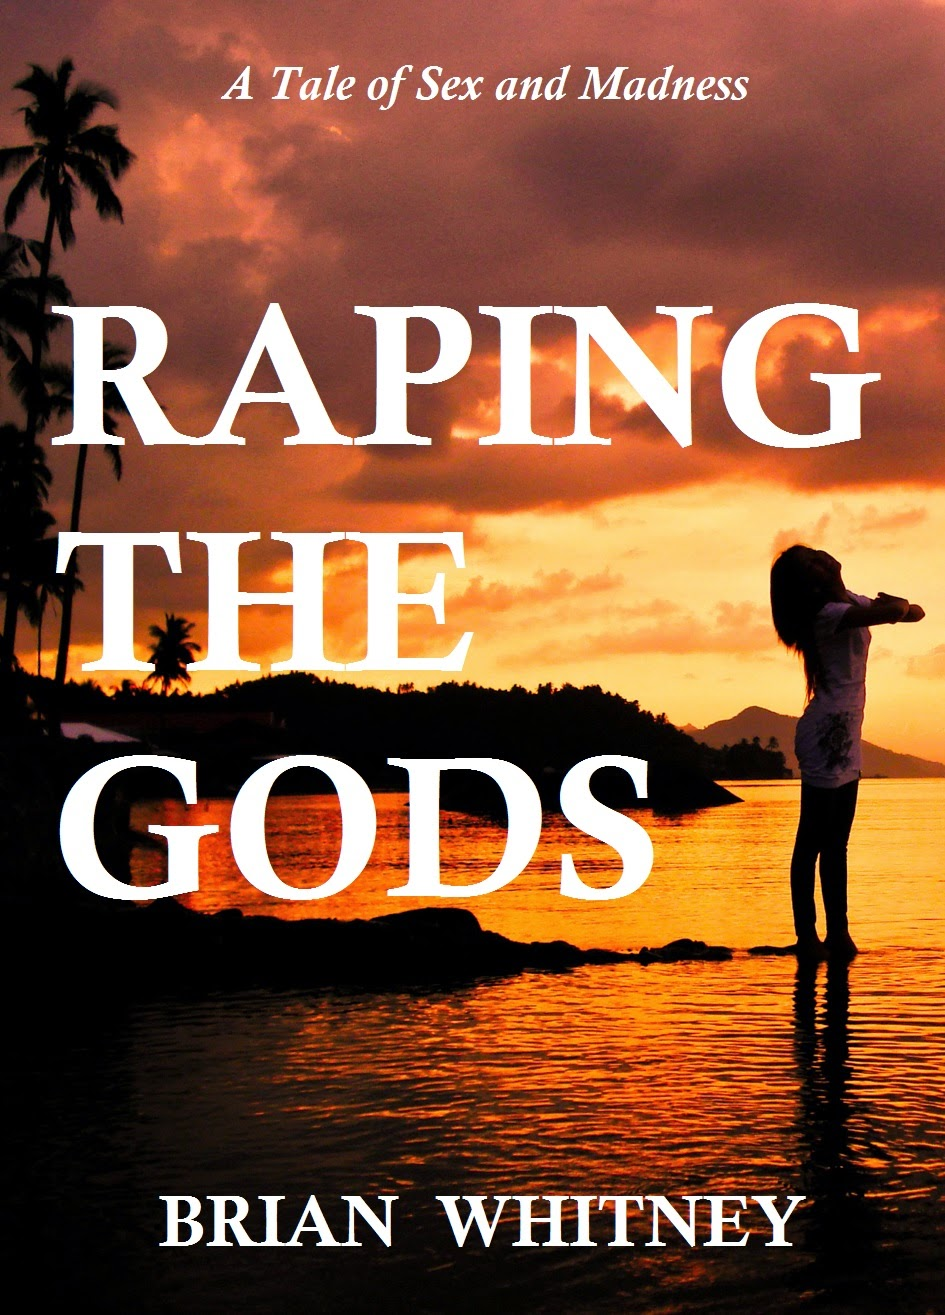 http://www.amazon.com/Raping-Gods-tale-sex-madness-ebook/dp/B00T5D7NVW/ref=sr_1_1?s=digital-text&ie=UTF8&qid=1423738046&sr=1-1&keywords=whitney+raping+the+gods